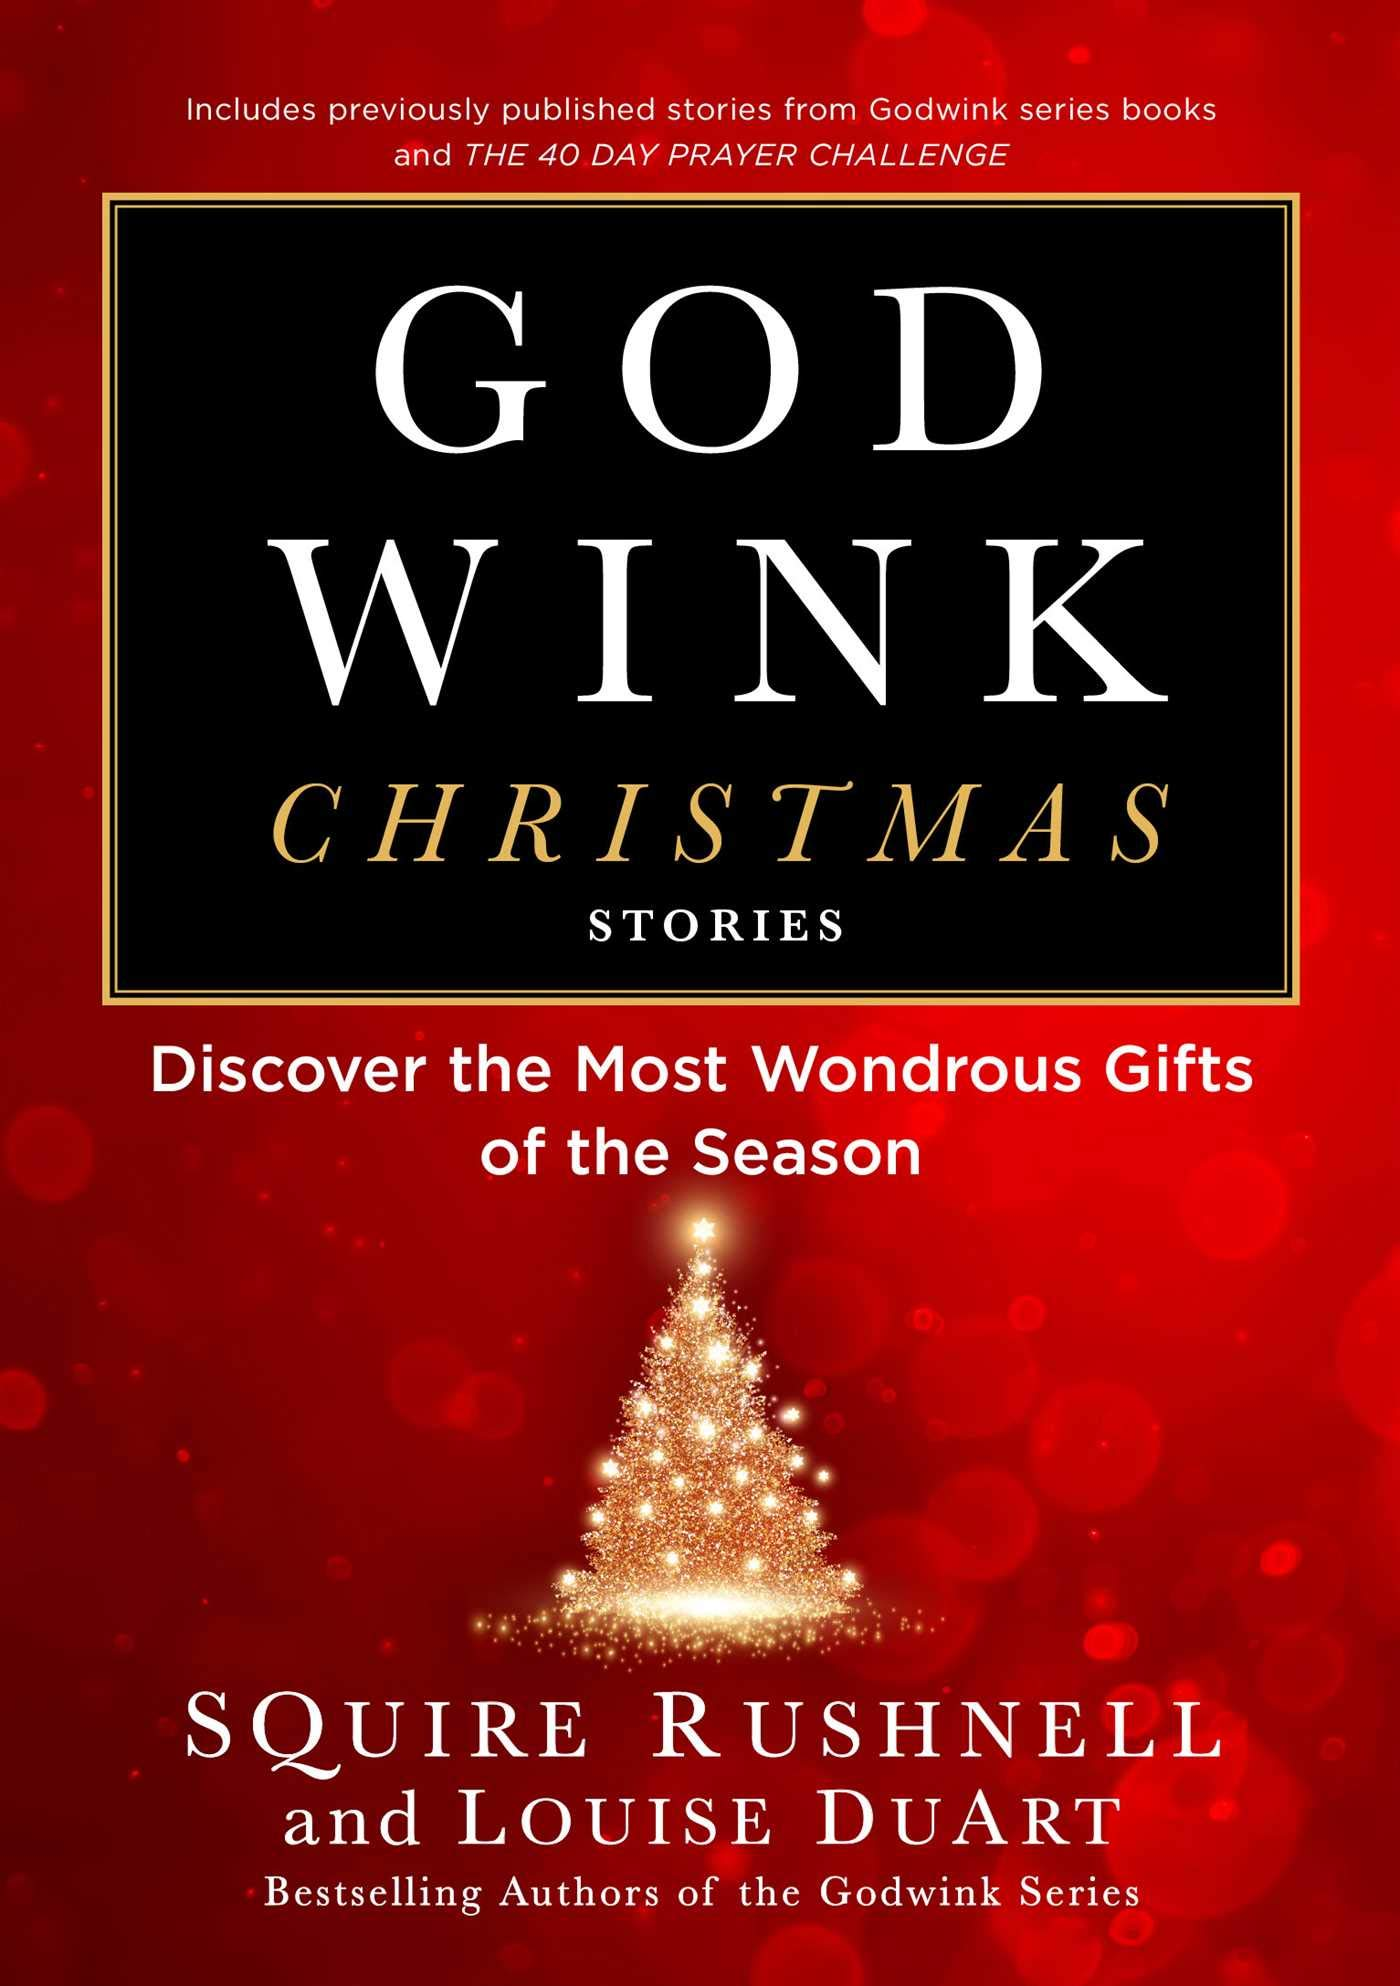 Godwink Christmas Stories Discover the Most Wondrous Gifts of the